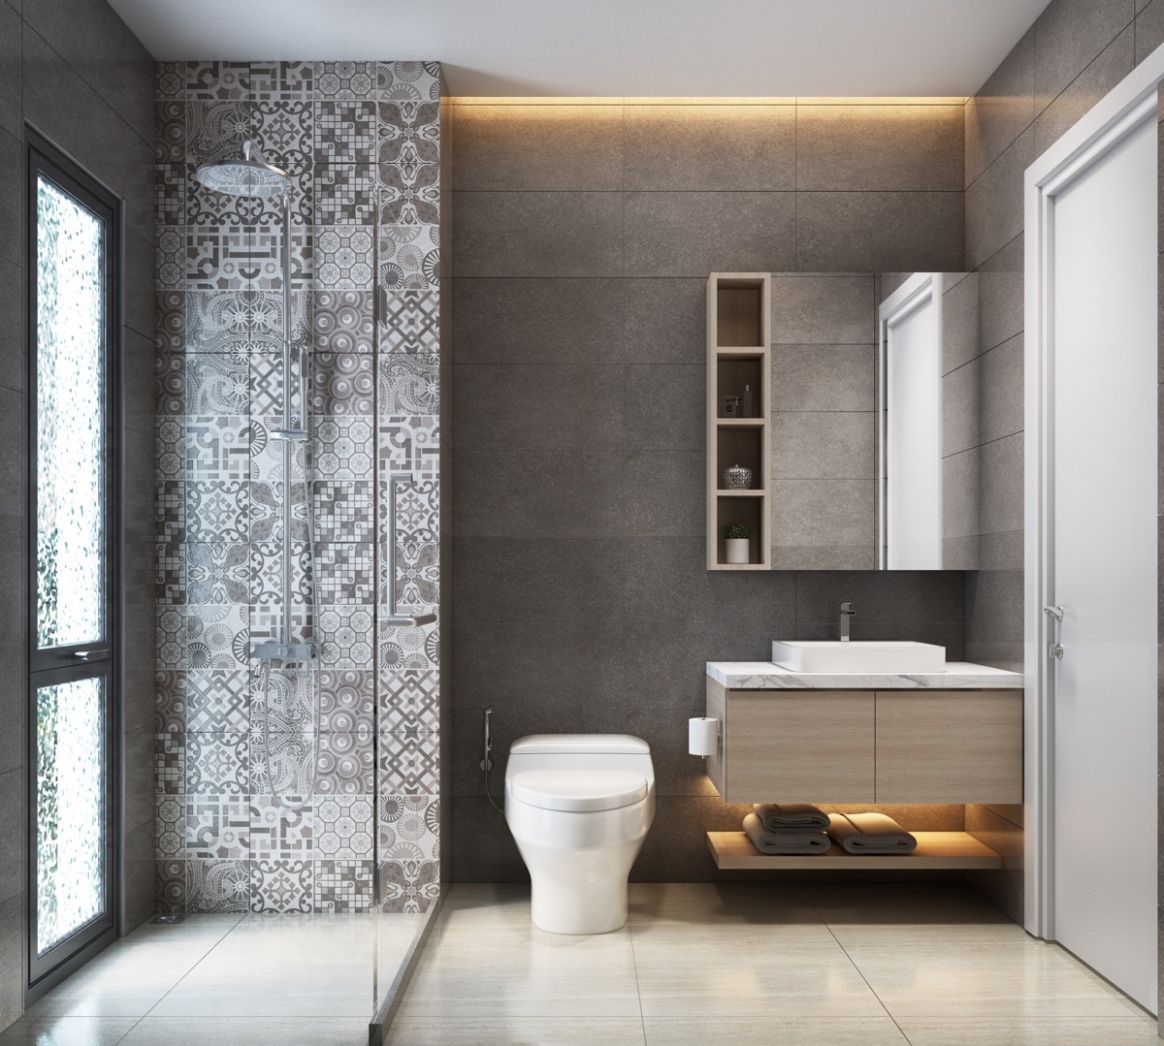 Small Bathroom Ideas With Grey Tiles - Image of Bathroom and Closet - bathroom ideas in grey